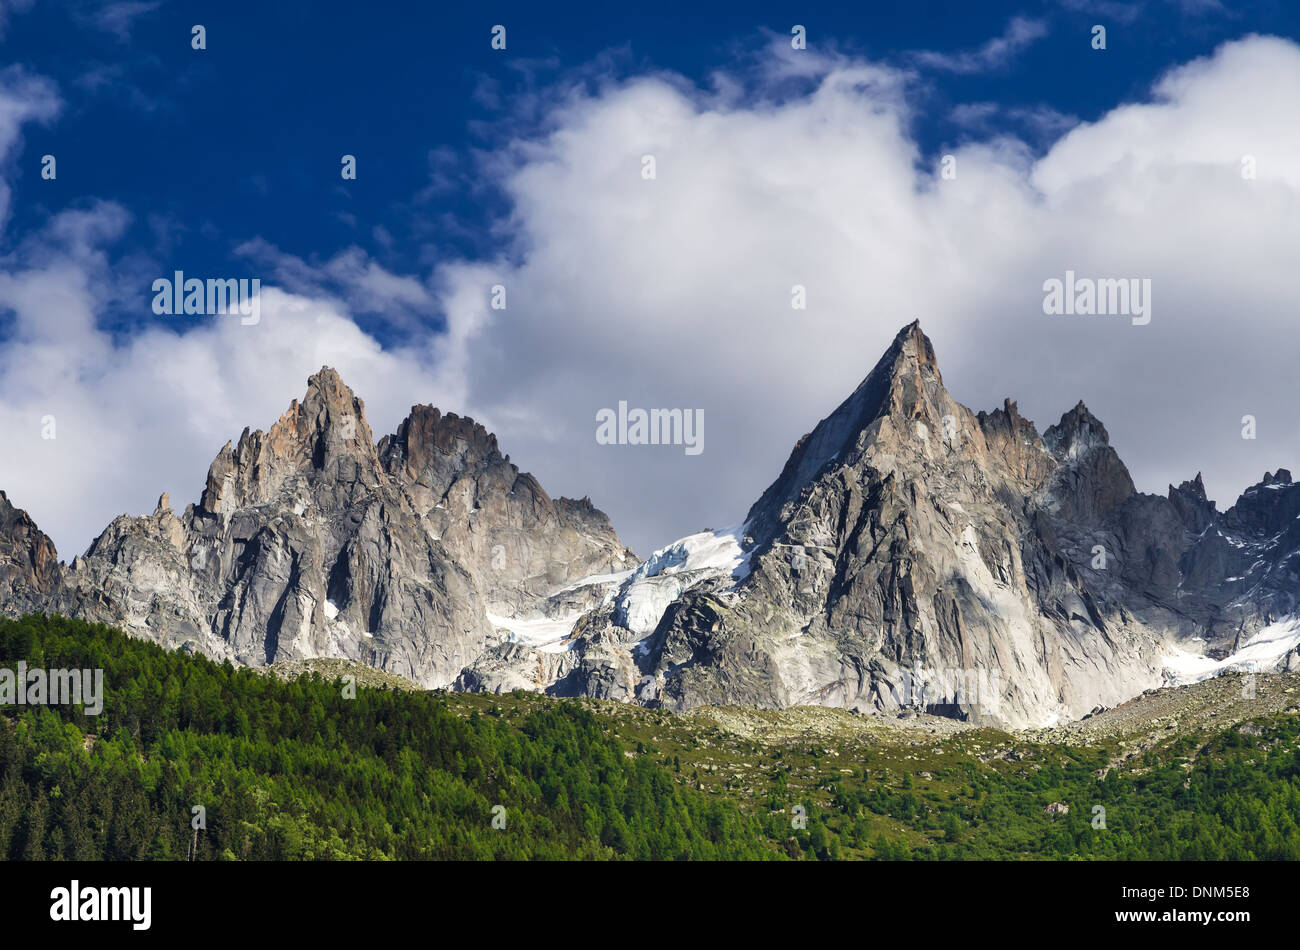 Alps Mountains, France. Outdoor scenery in Chamonis, with Aiguille de Midi ridge (3845 m) Stock Photo